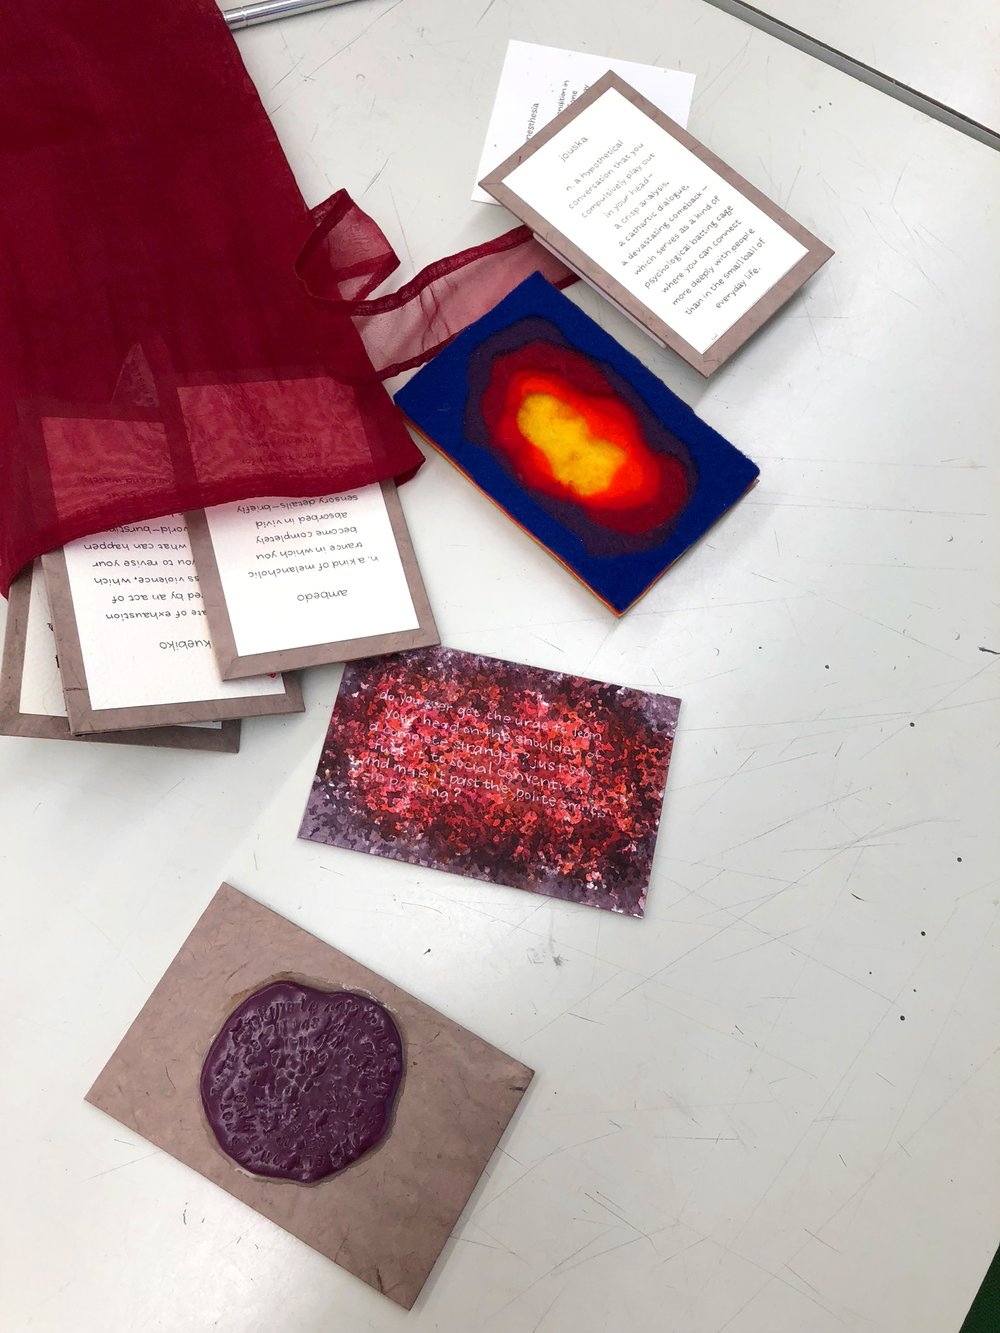 Contents of Synesthesia Bag